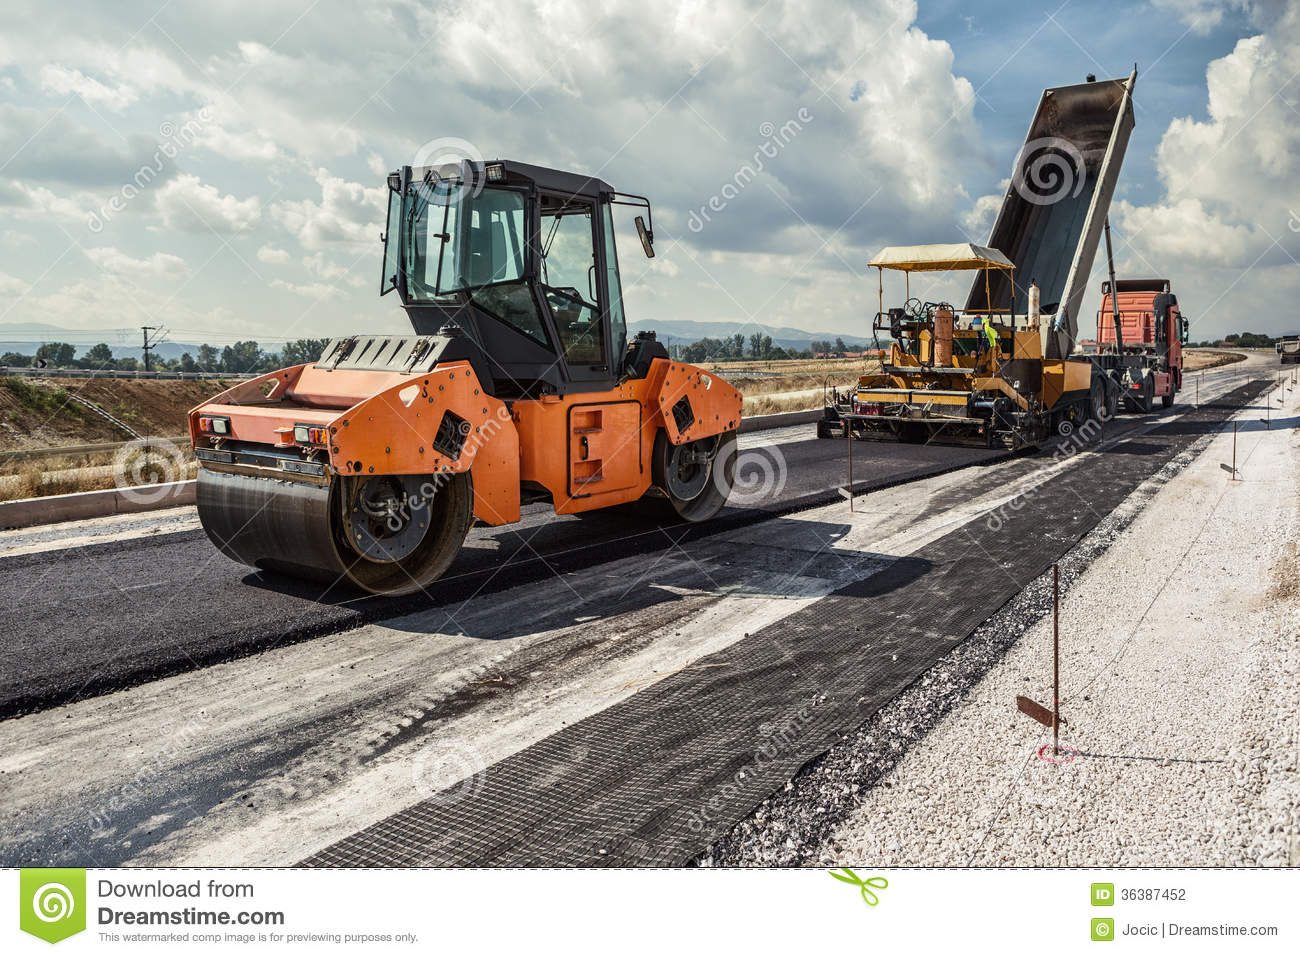 construction of the road Paving the way is a partnership of morpc, the city of columbus, odot, and fhwa to provide information about ongoing road construction information in order to alleviate traffic congestion for commuters in and around columbus.